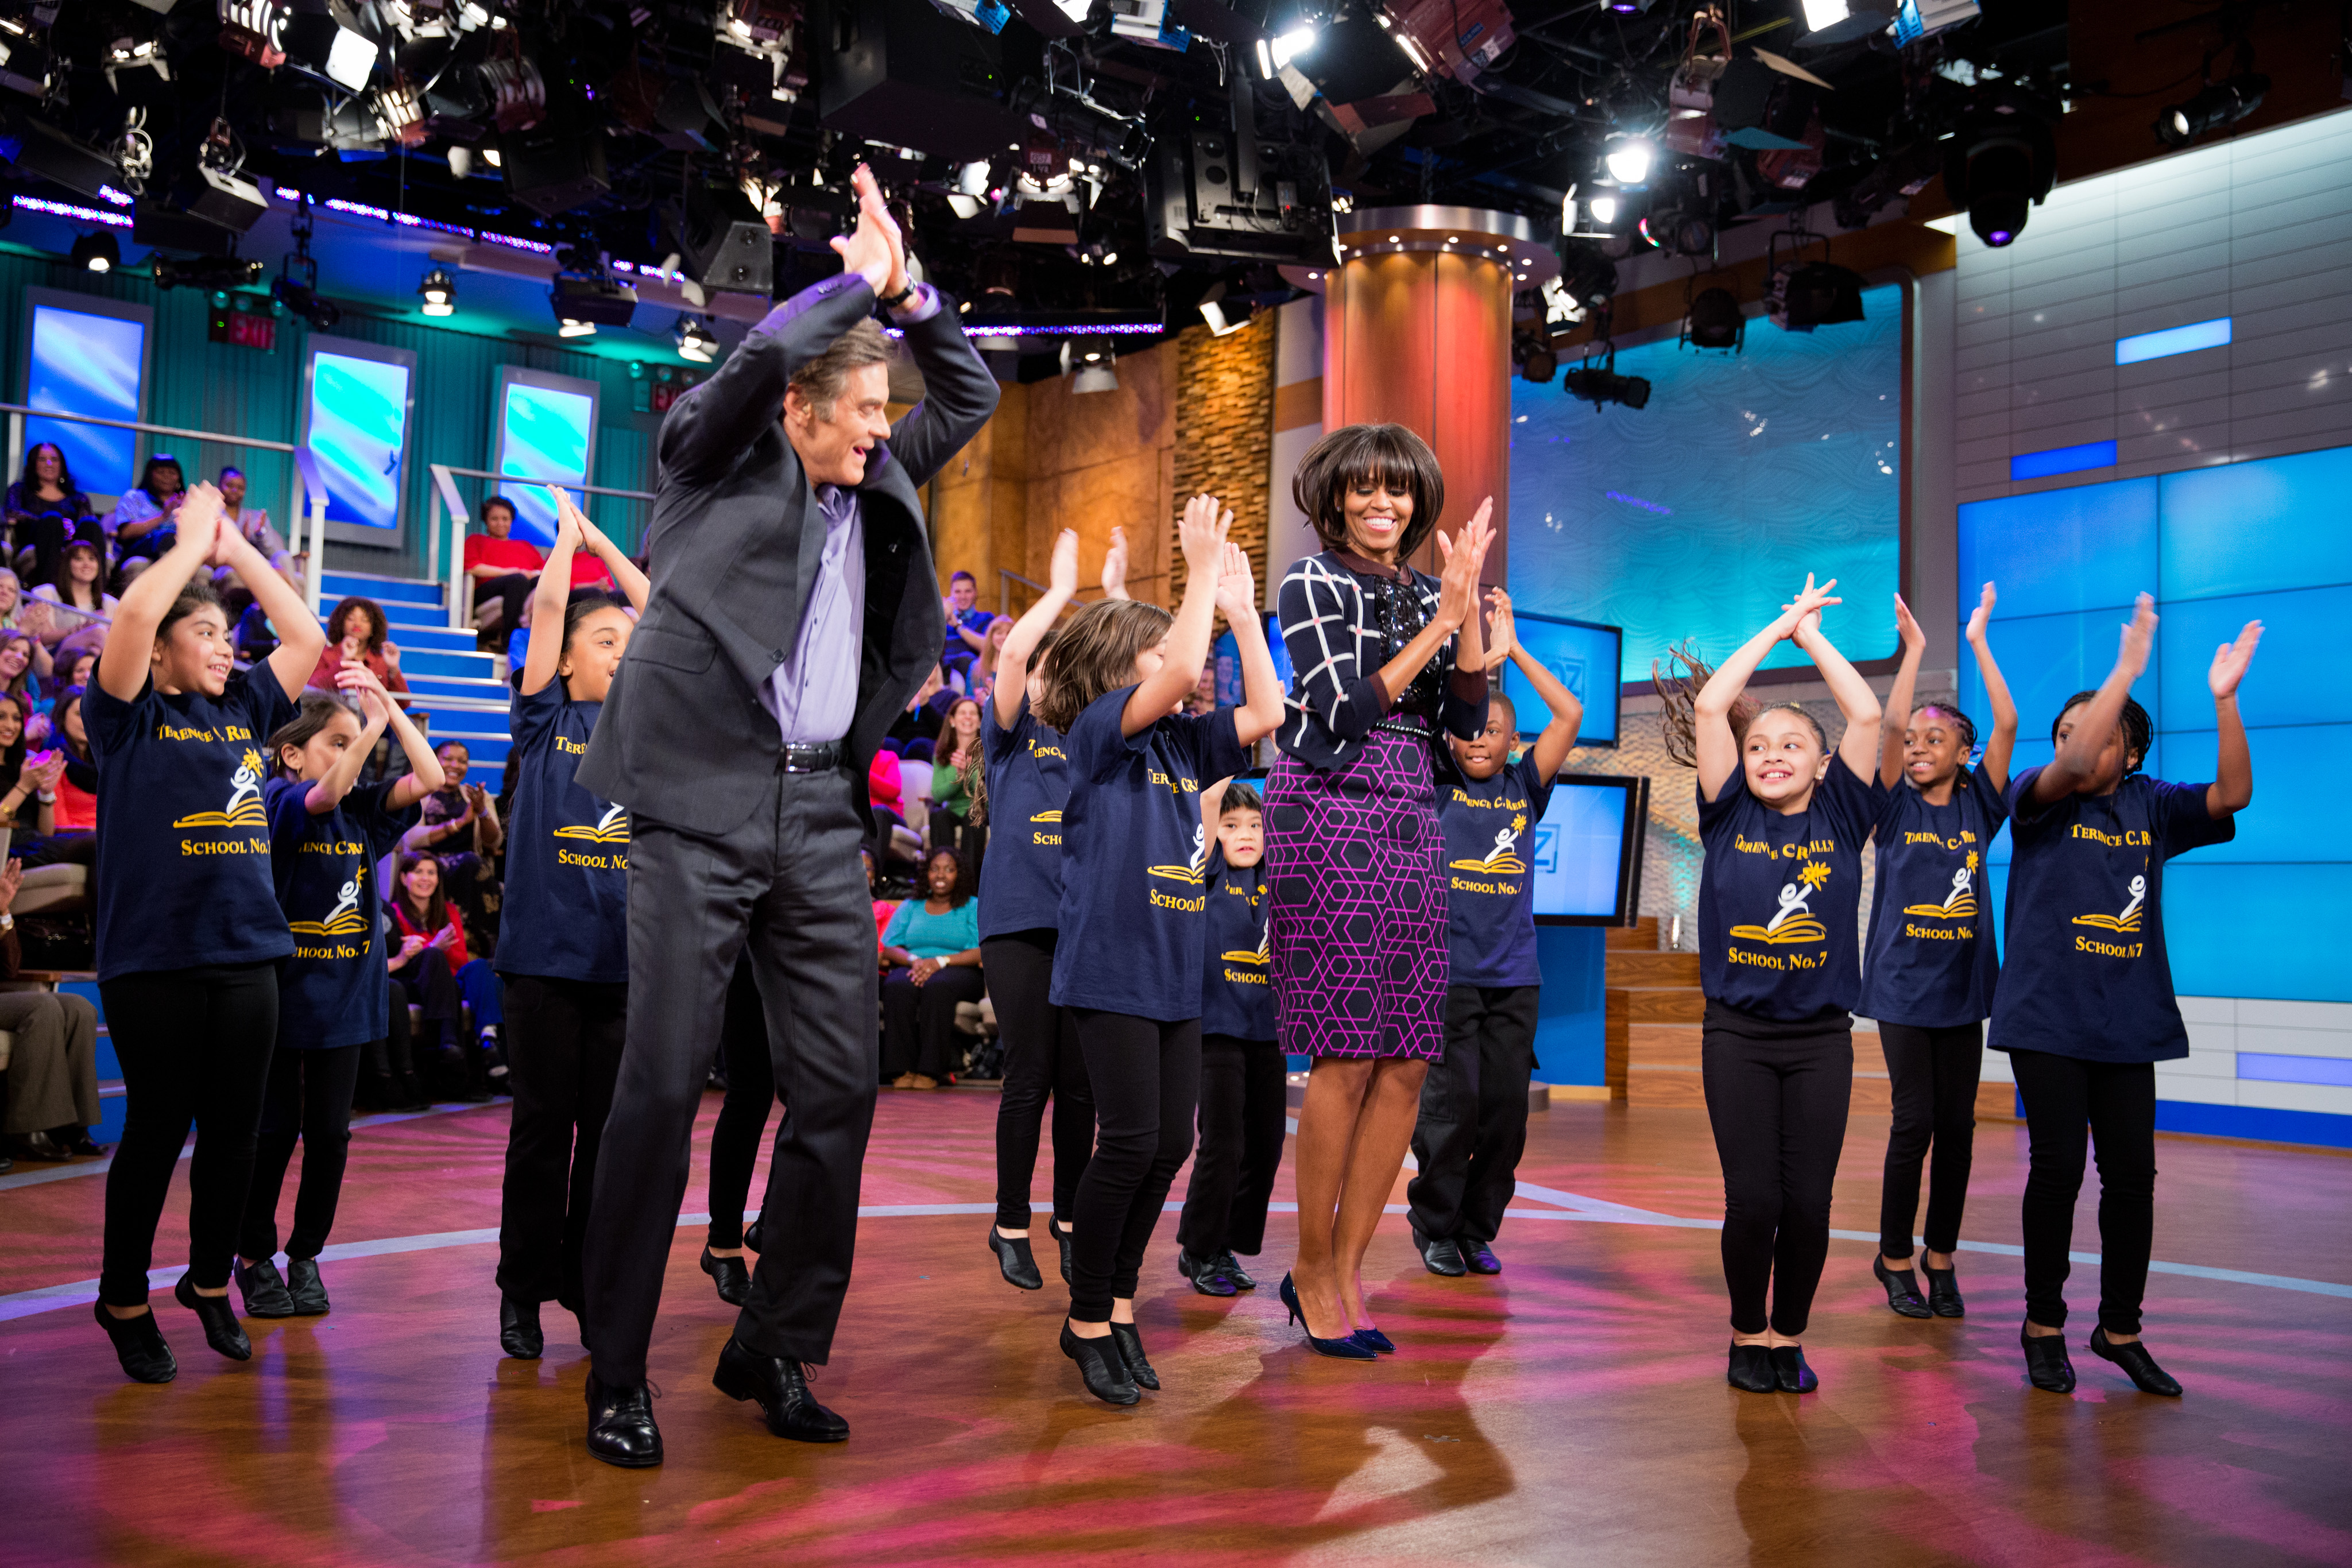 """Michelle Obama and Dr. Mehmet Oz learn a dance routine during a taping of the """"Dr. Oz Show"""", 2013.jpg"""